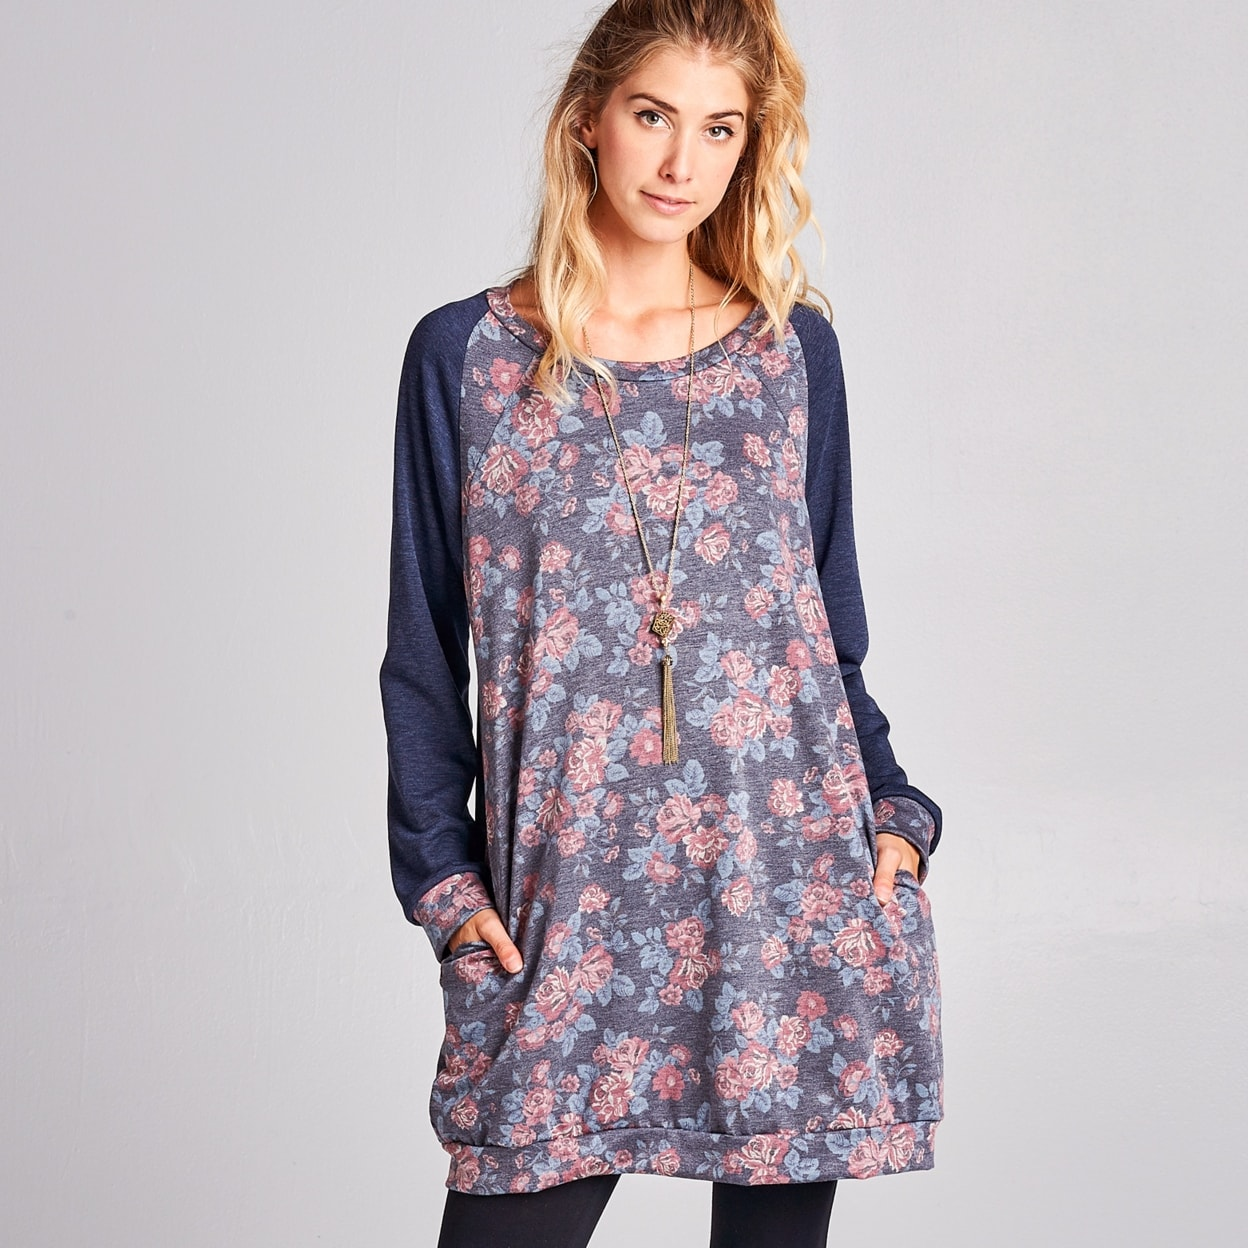 Shop Floral French Terry Sweatshirt Dress with Pockets - On Sale ... 17b41106b